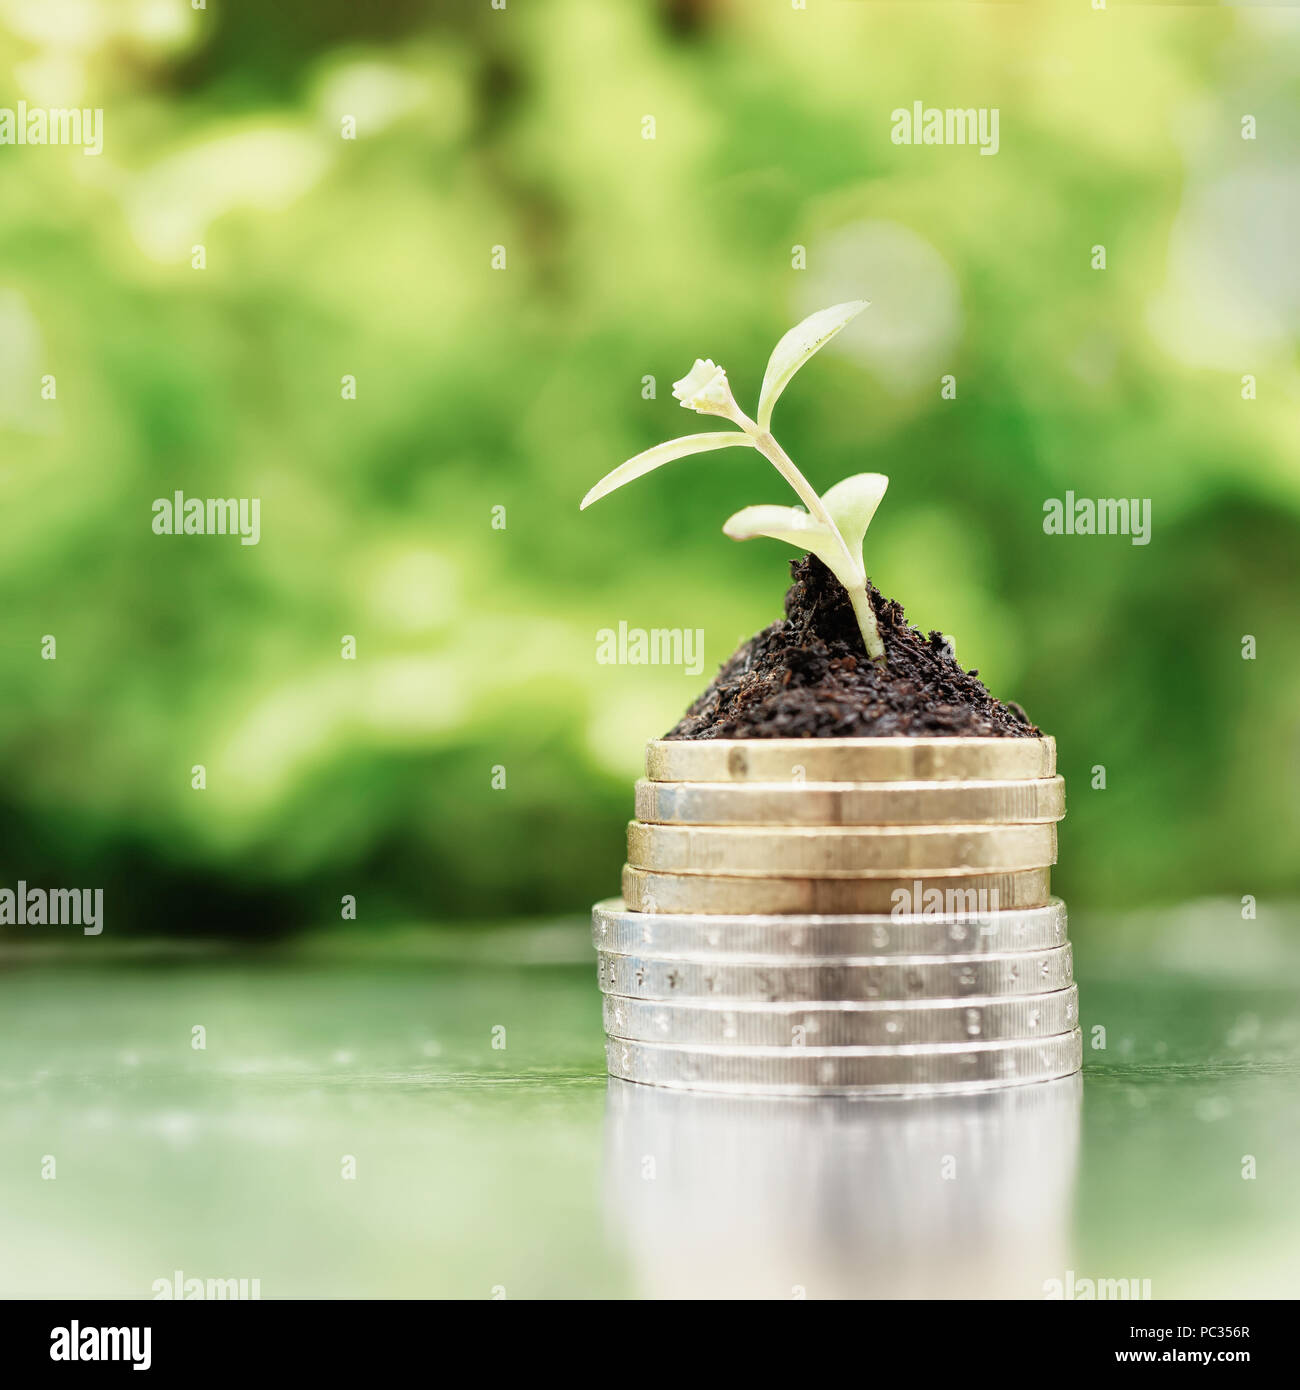 Coins in soil with young plant on green background. Money growth concept. High key filter. - Stock Image